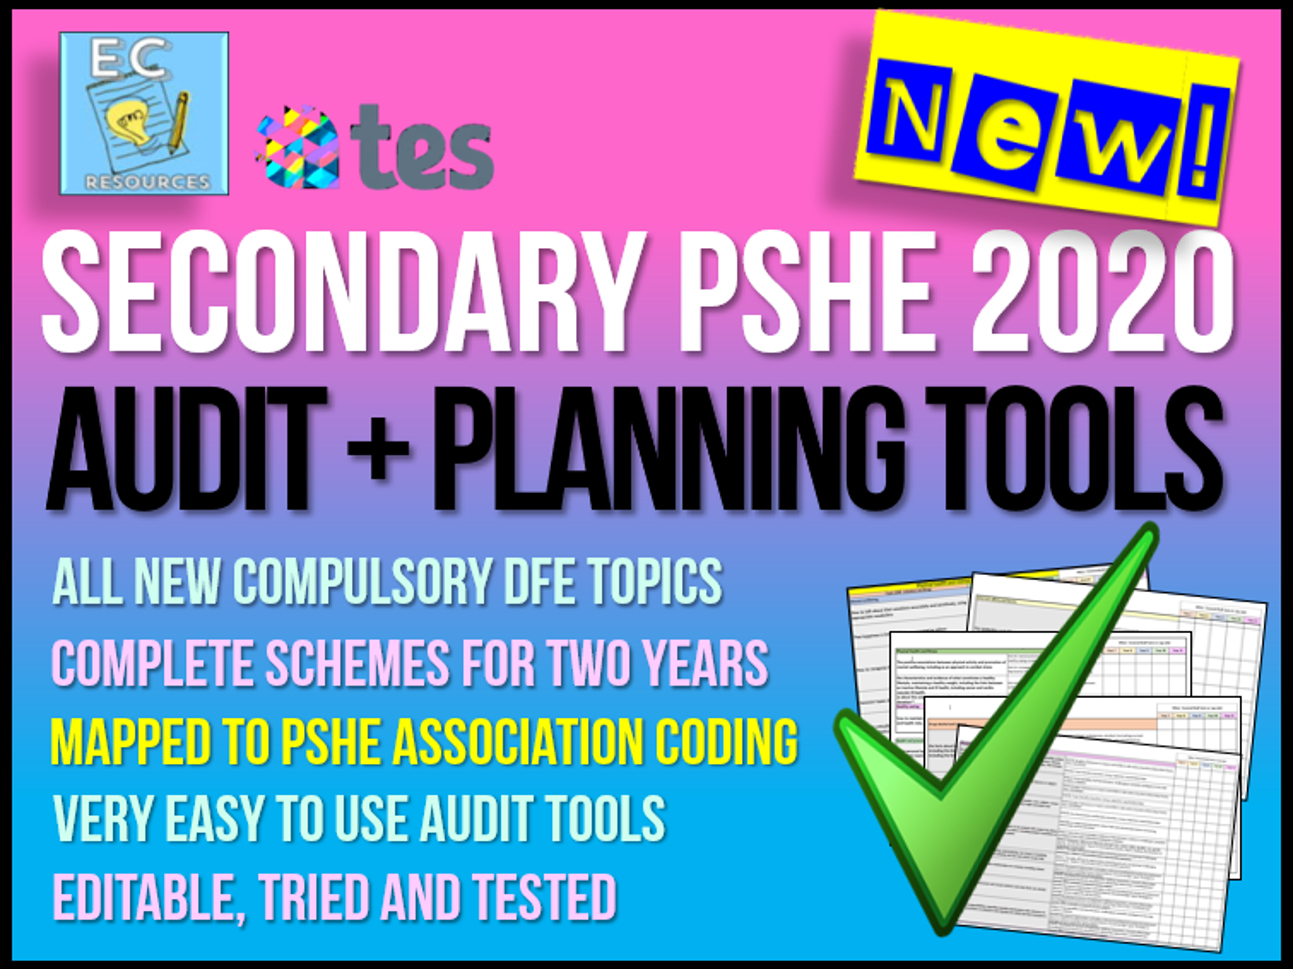 Pshe 2020 Planningec_Resources | Teaching Resources with regard to Pshe Special Days Calender 2020